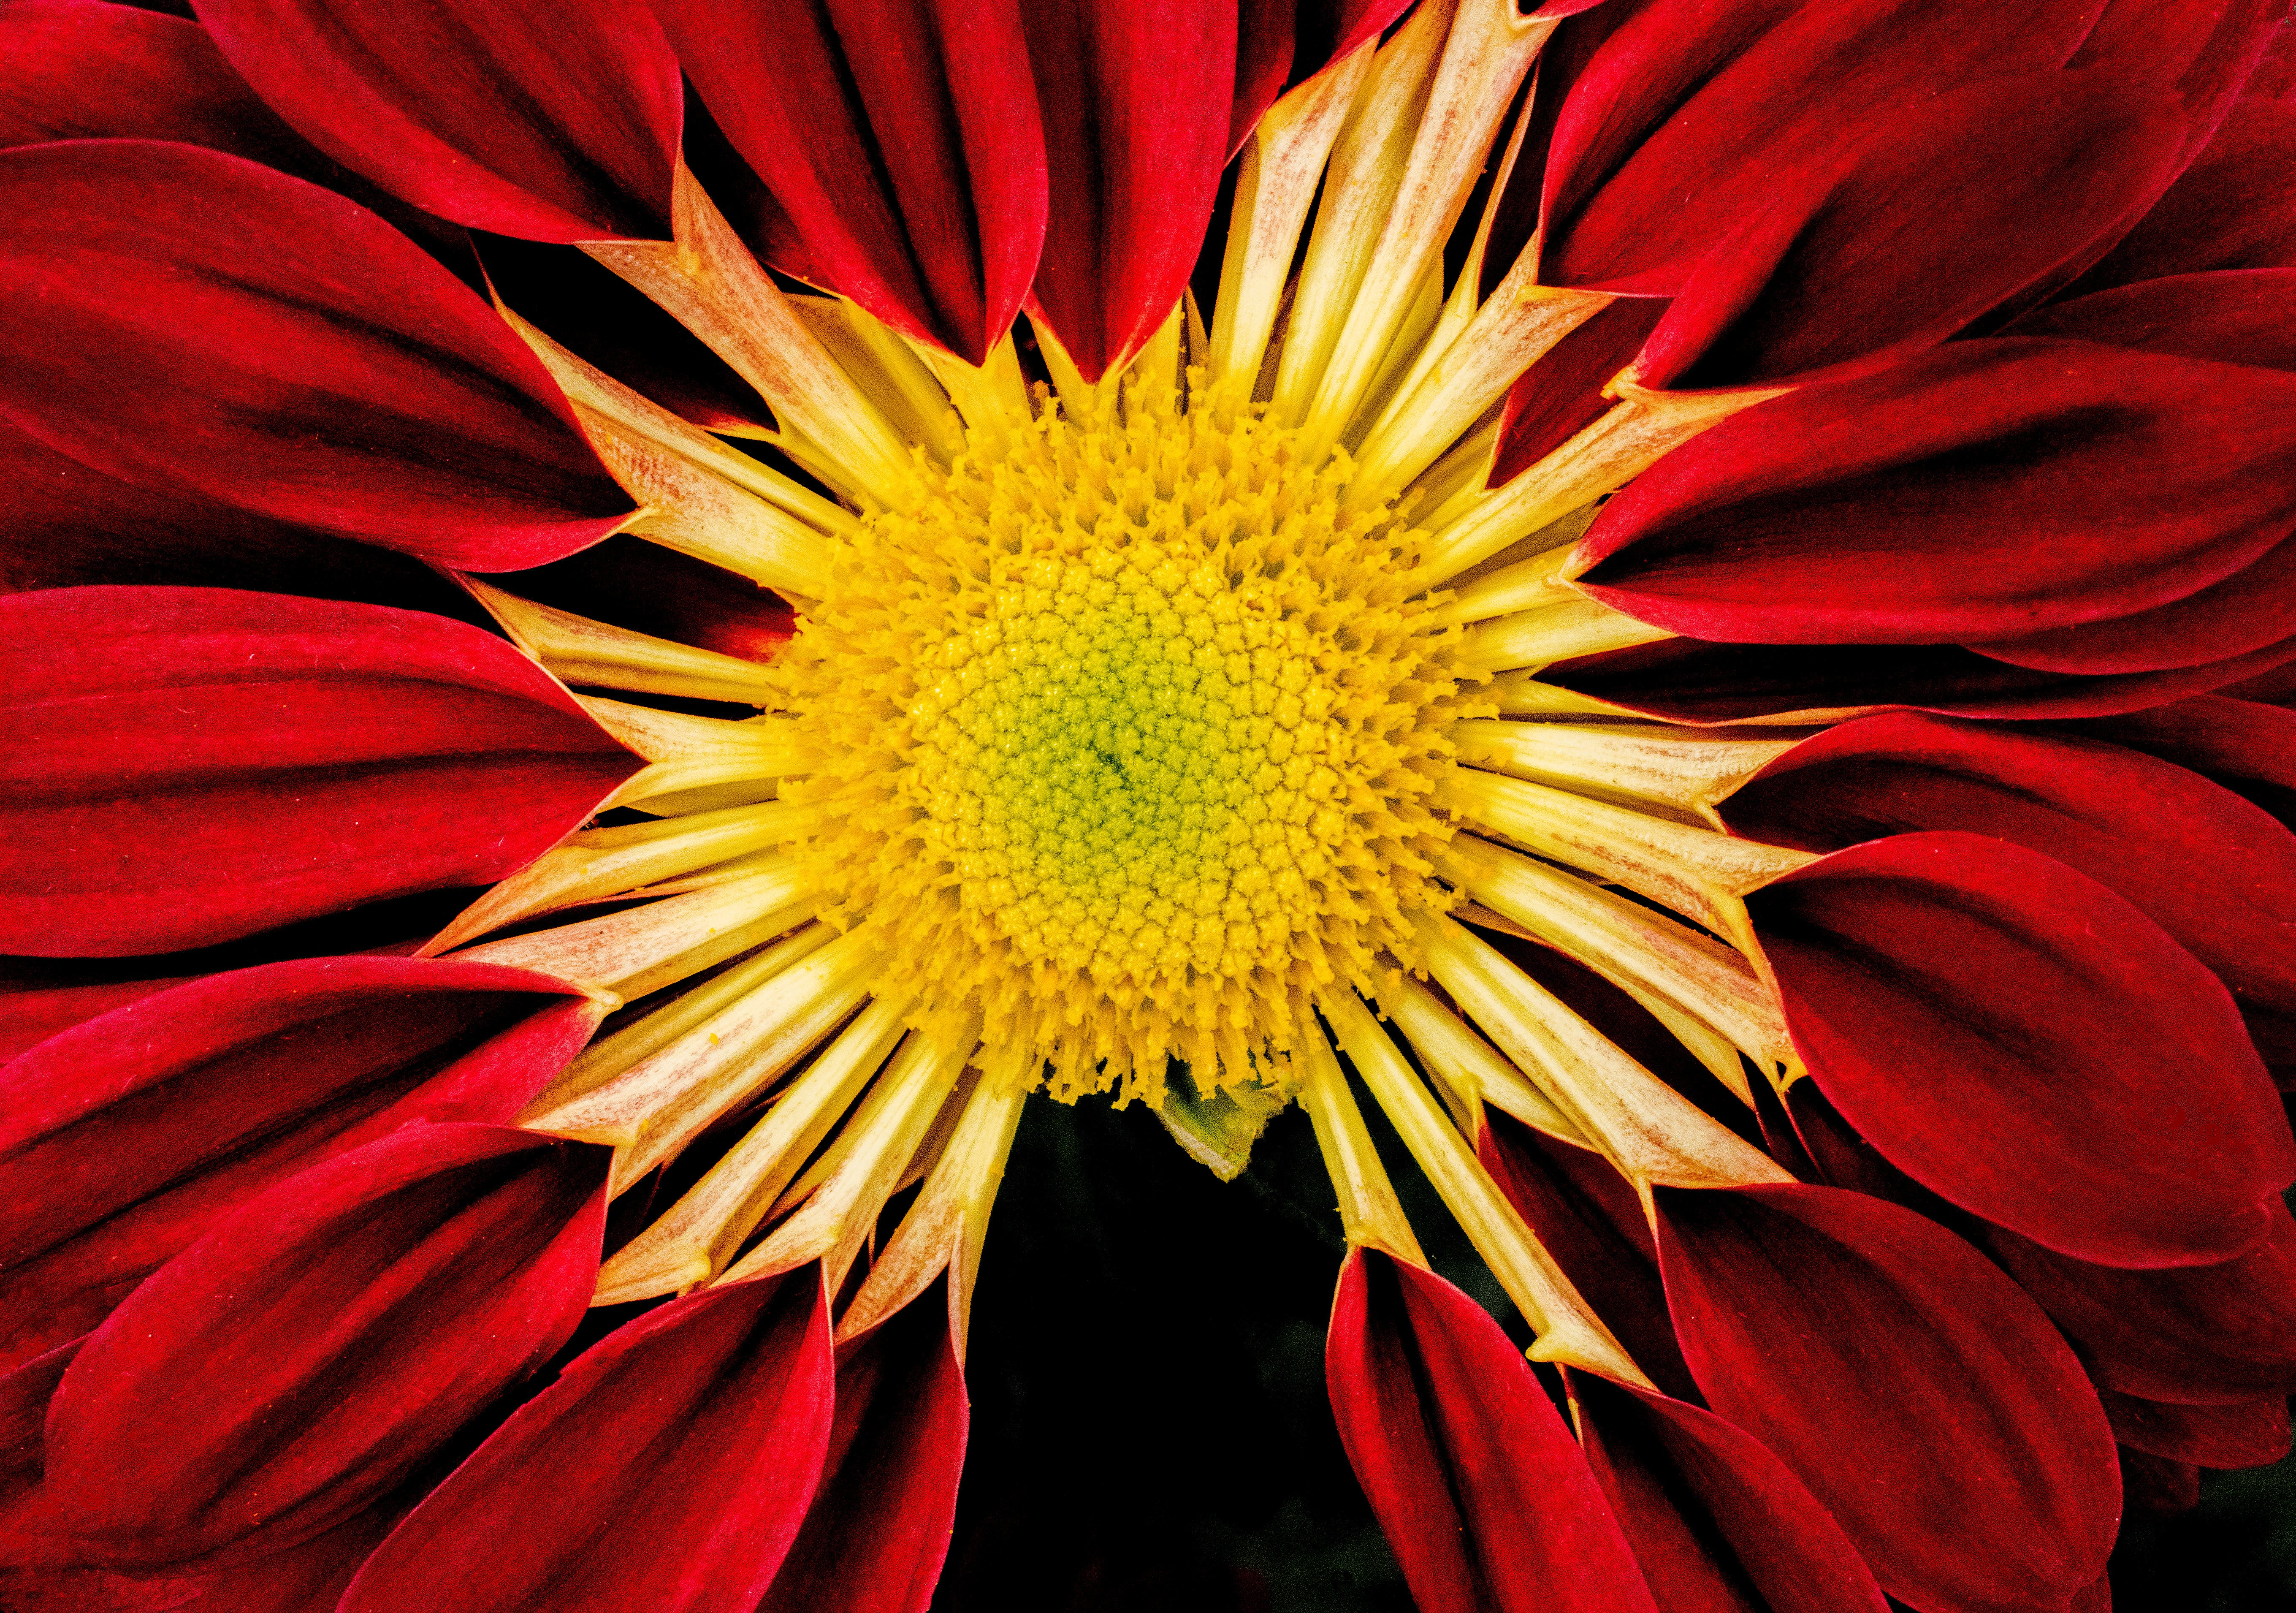 Closeup Photo of Red Blanket Flower